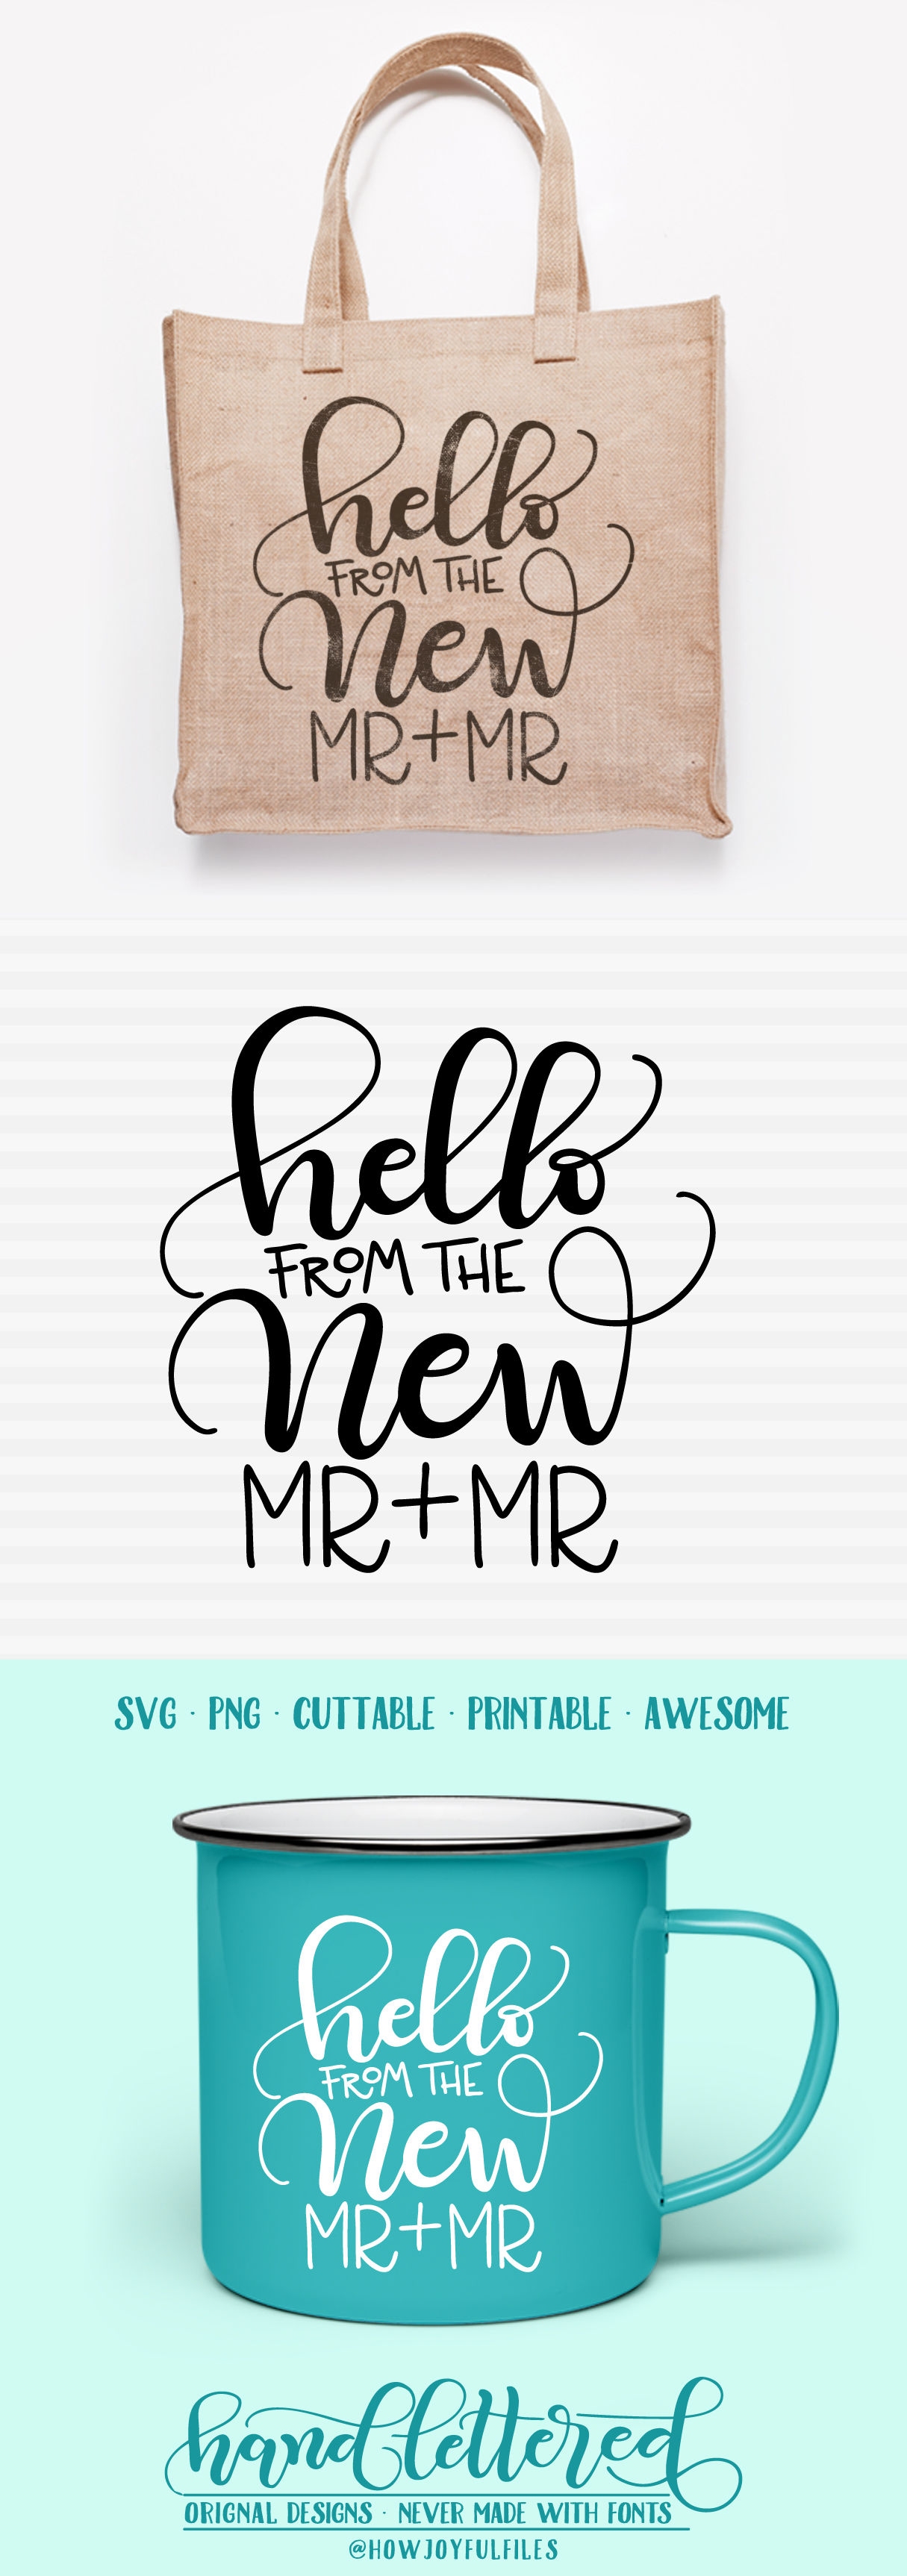 Hello From The New Mr Mr Svg Pdf Dxf Hand Drawn Lettered Cut File Graphic Overlay By Howjoyful Files Thehungryjpeg Com